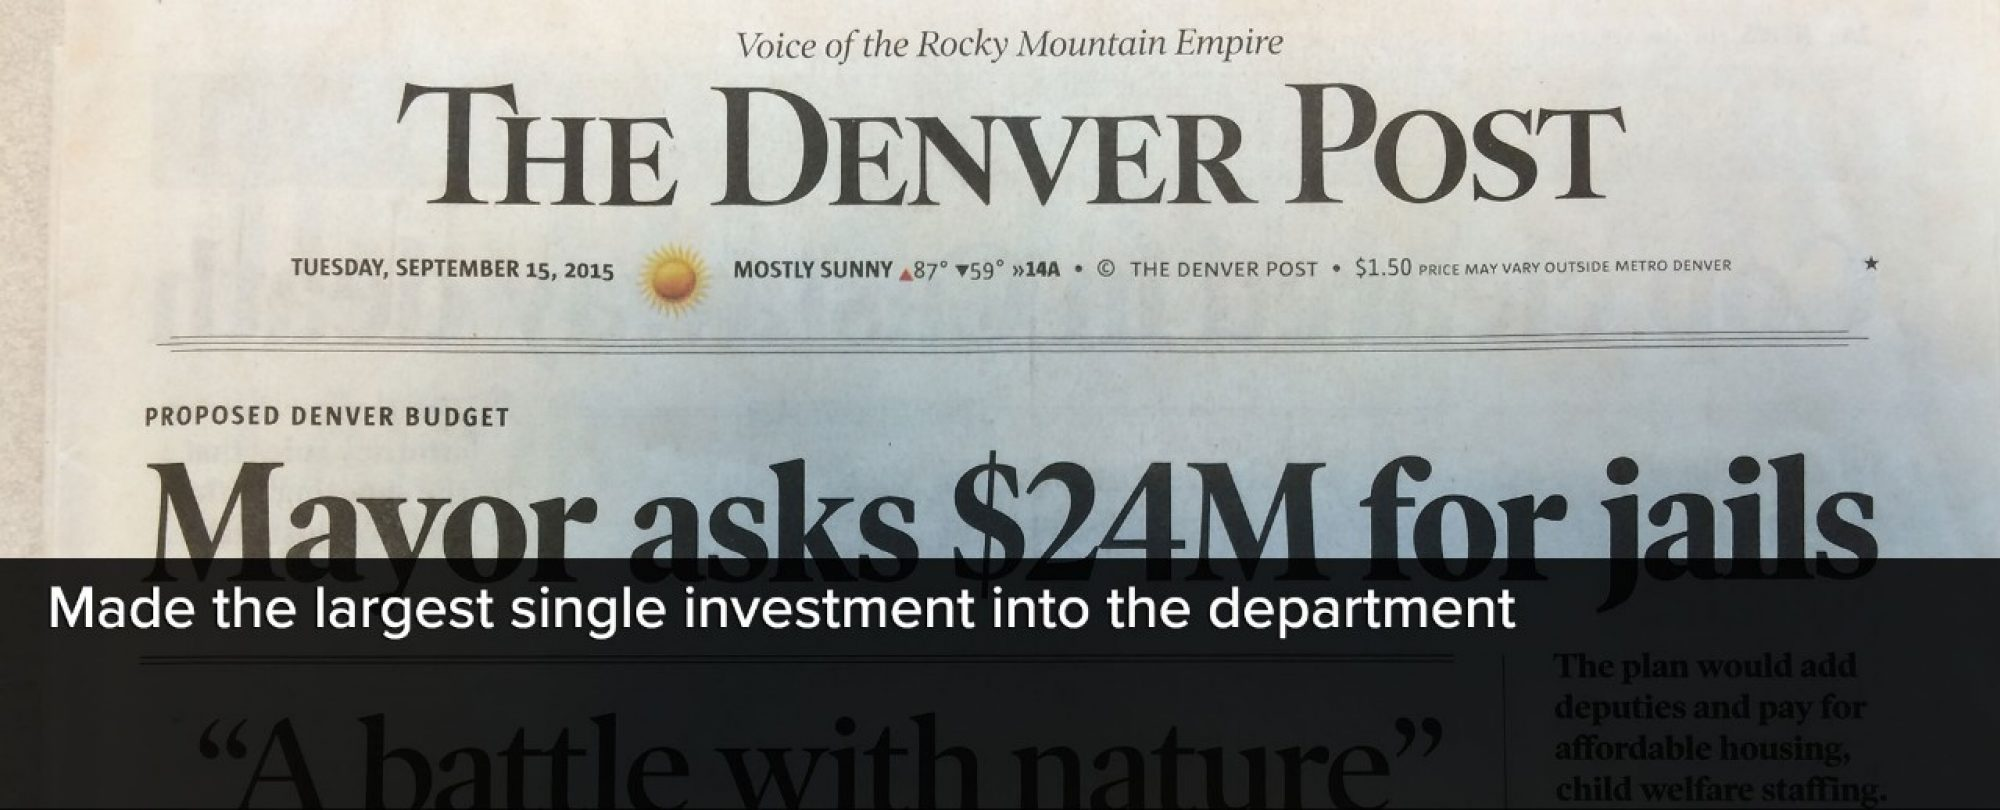 Photo snapshot of the front page of the Denver Post featuring an article about the mayor asking for $24 million for Denver County Jails. This made the largest investment into the Denver Sheriff Department